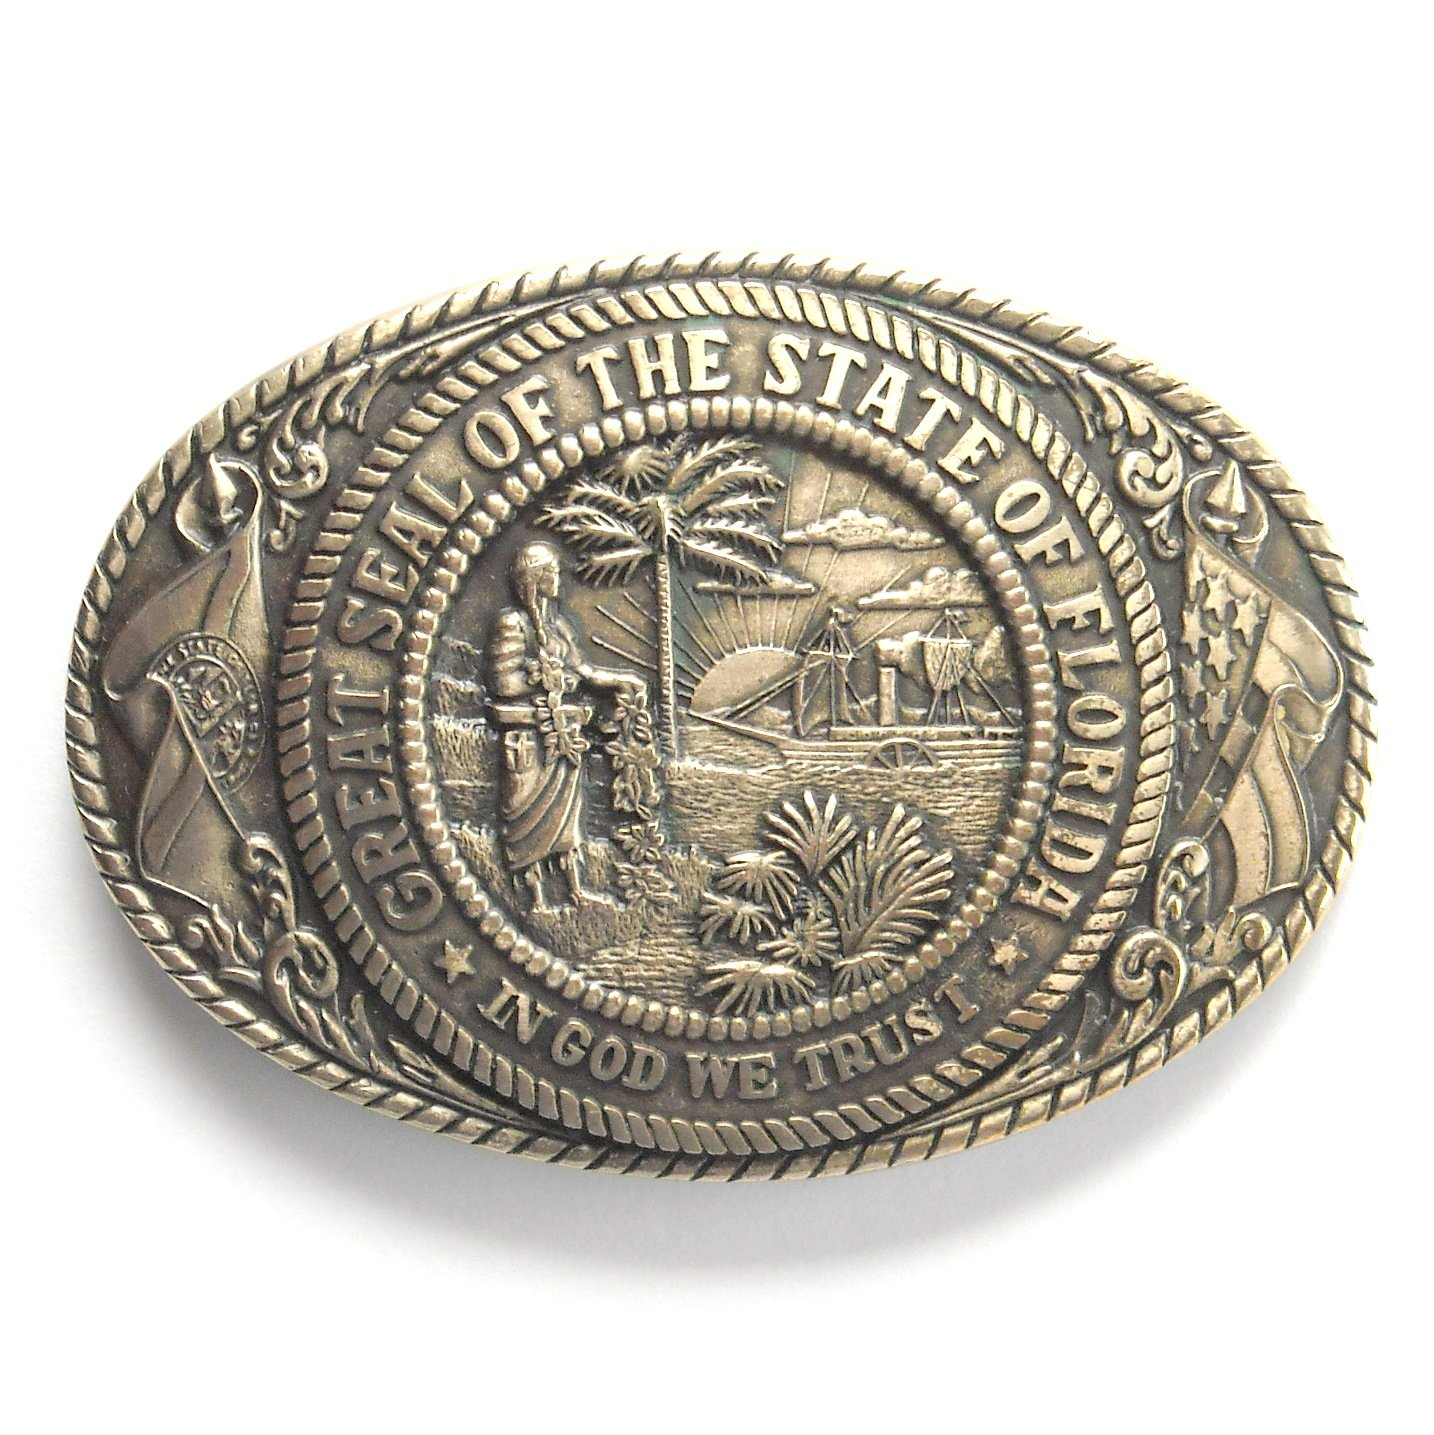 Vintage Tony Lama Great Seal Of The State Of Florida brass used belt buckle